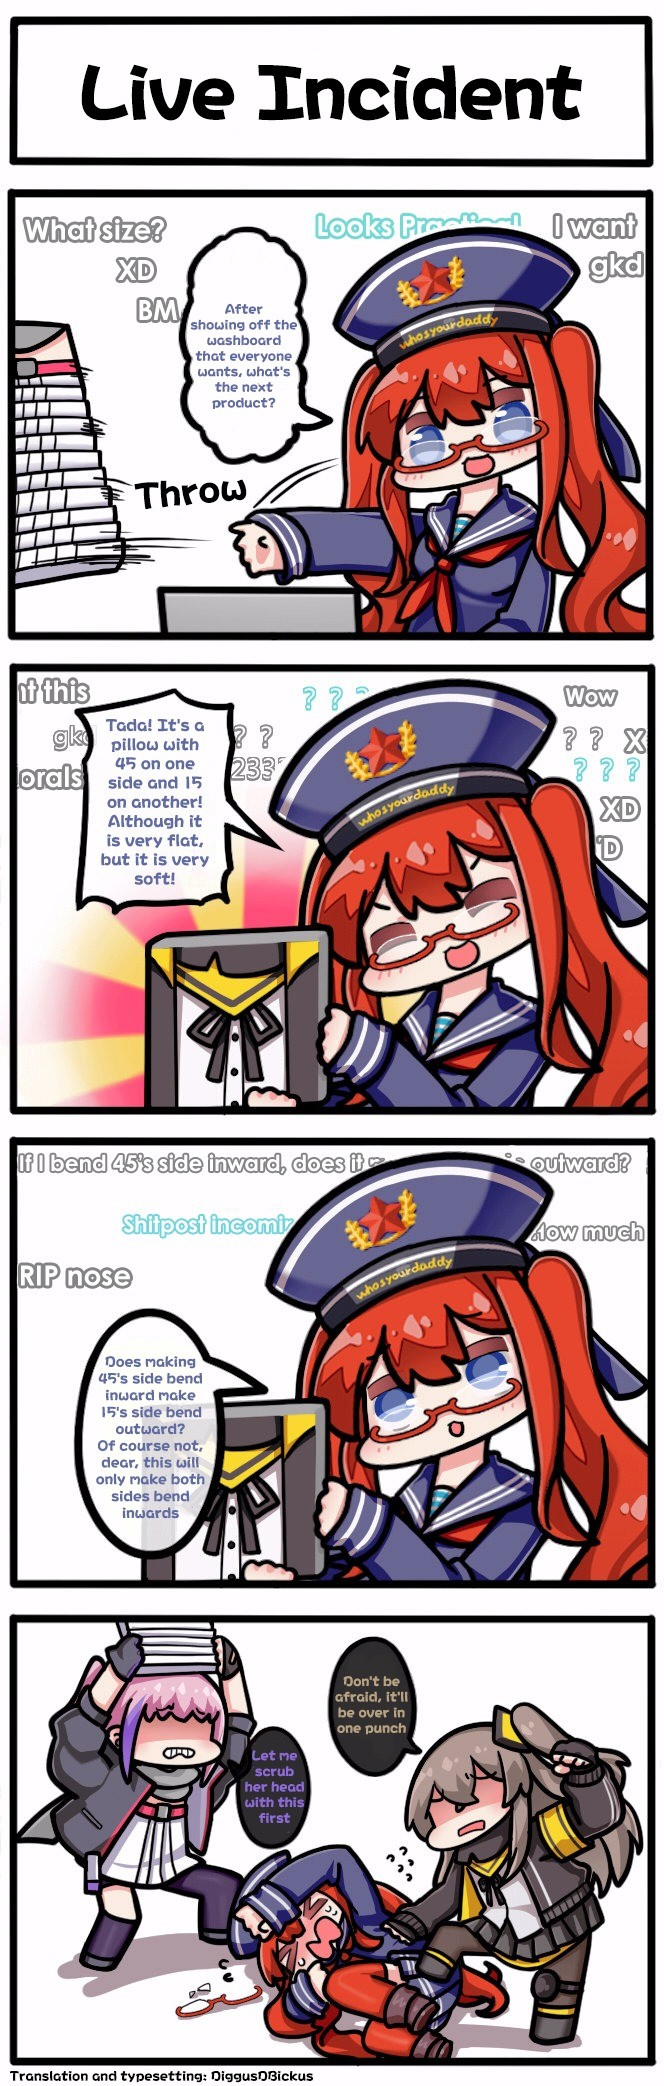 Live Incident. liveincident/ join list: GirlsFrontline (461 subs)Mention Clicks: 60279Msgs Sent: 194324Mention History.. A troubling (yet one dimensional) issue.